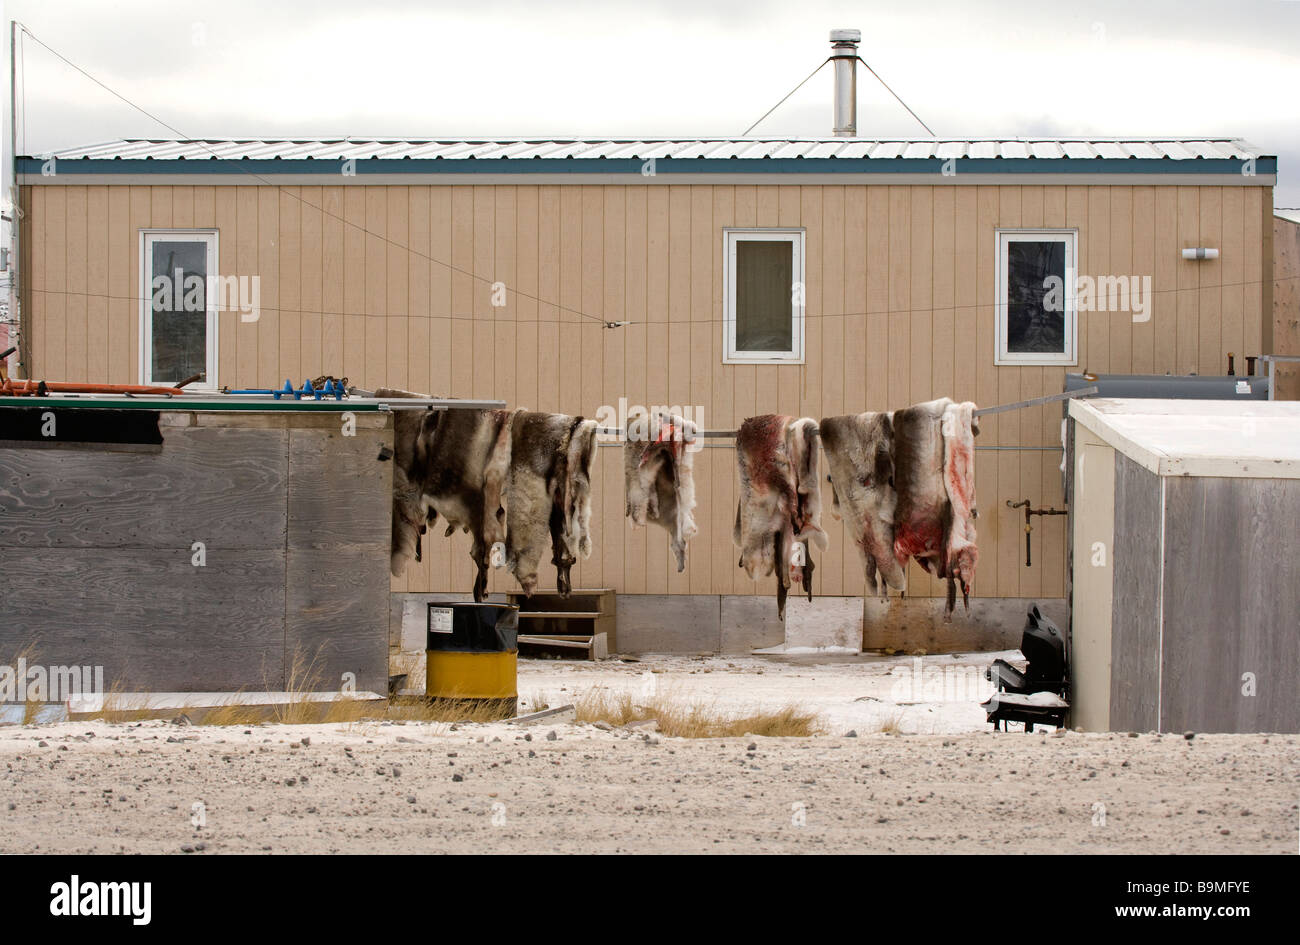 Row of deer skins hanging outside building in Taloyoak inuit settlement Nunavut, Canadian arctic, Canada - Stock Image